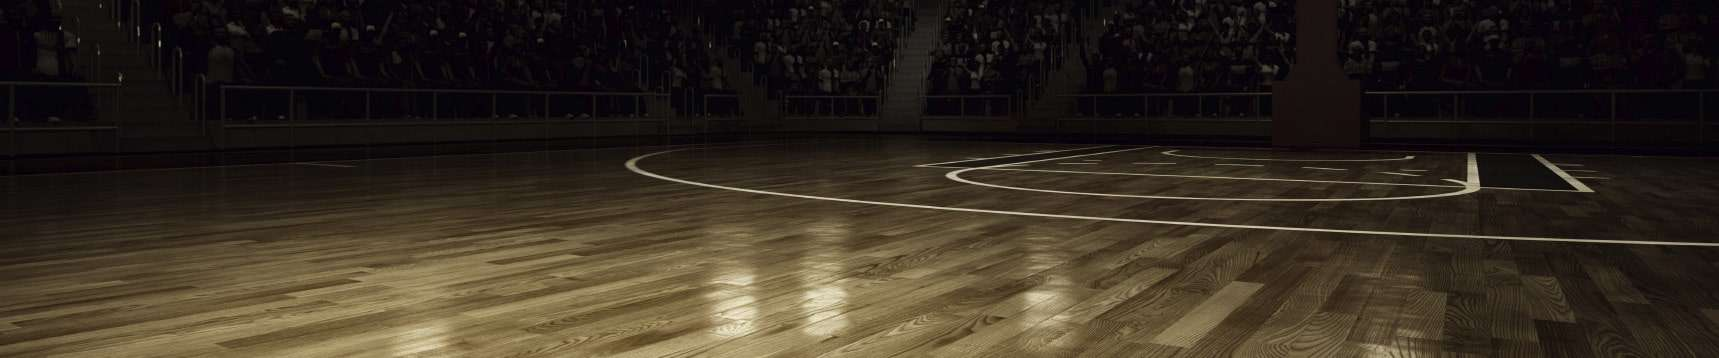 Basketball arena 000059188864 Medium 1920 - Basketball Court Flooring - Wood Gym Flooring - Hardwood Flooring San Diego